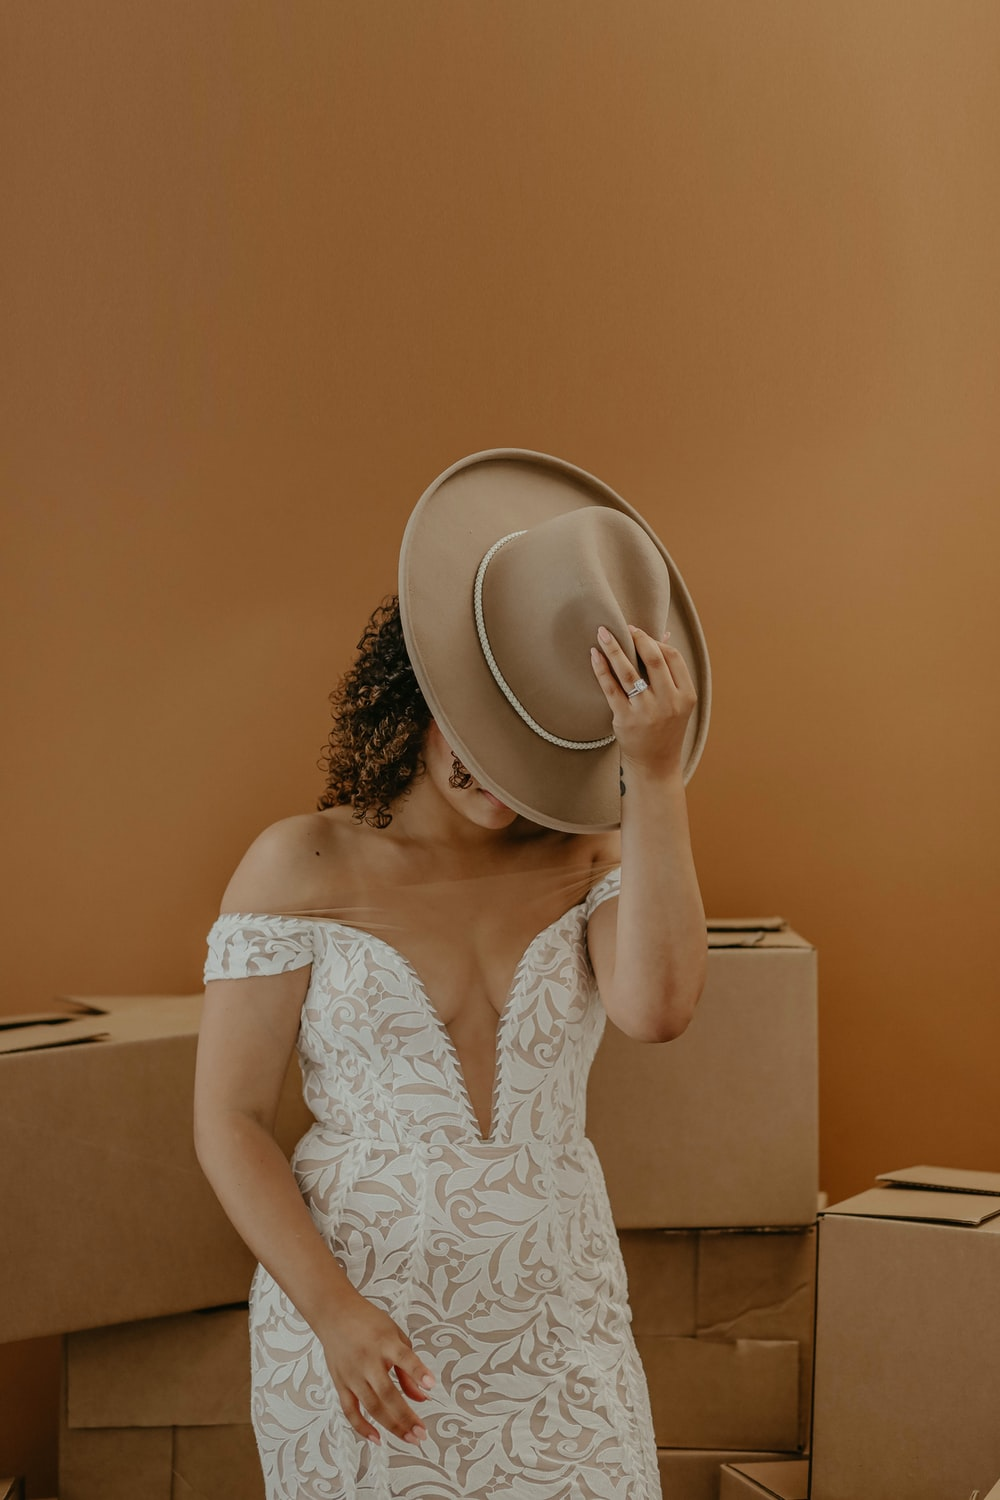 woman in white floral tank top holding brown hat